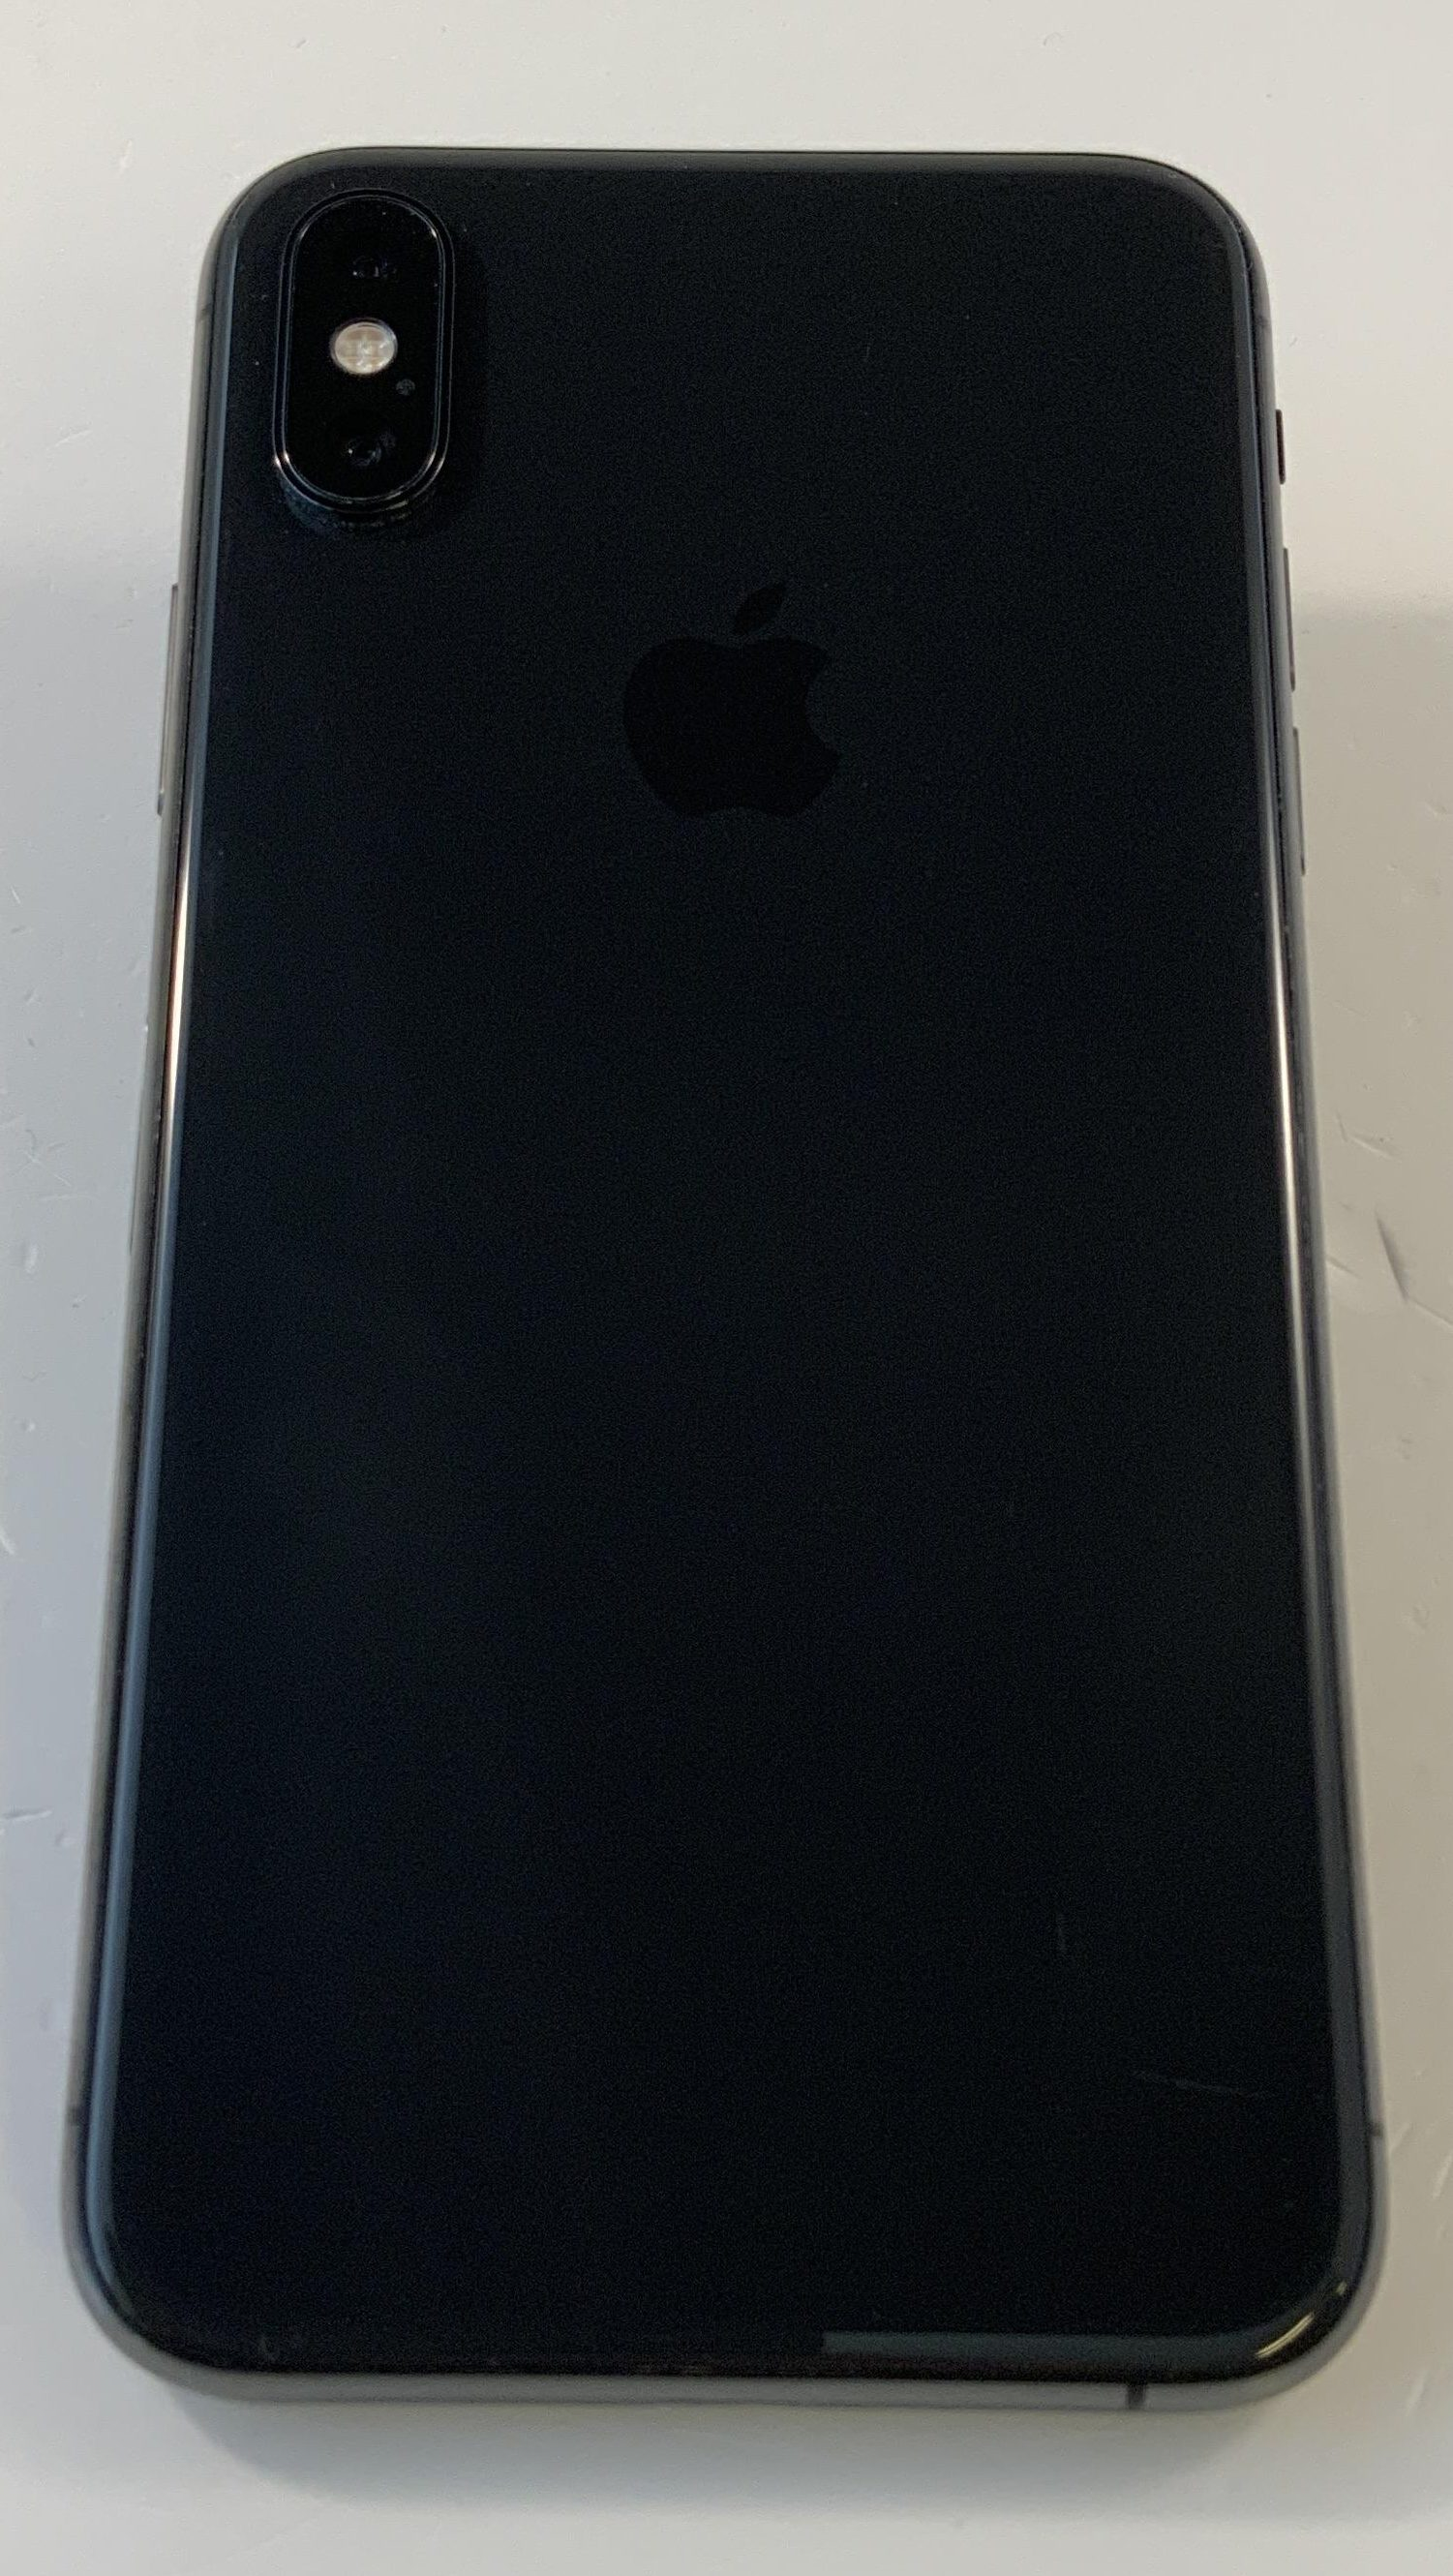 iPhone XS 256GB, 256GB, Space Gray, immagine 2